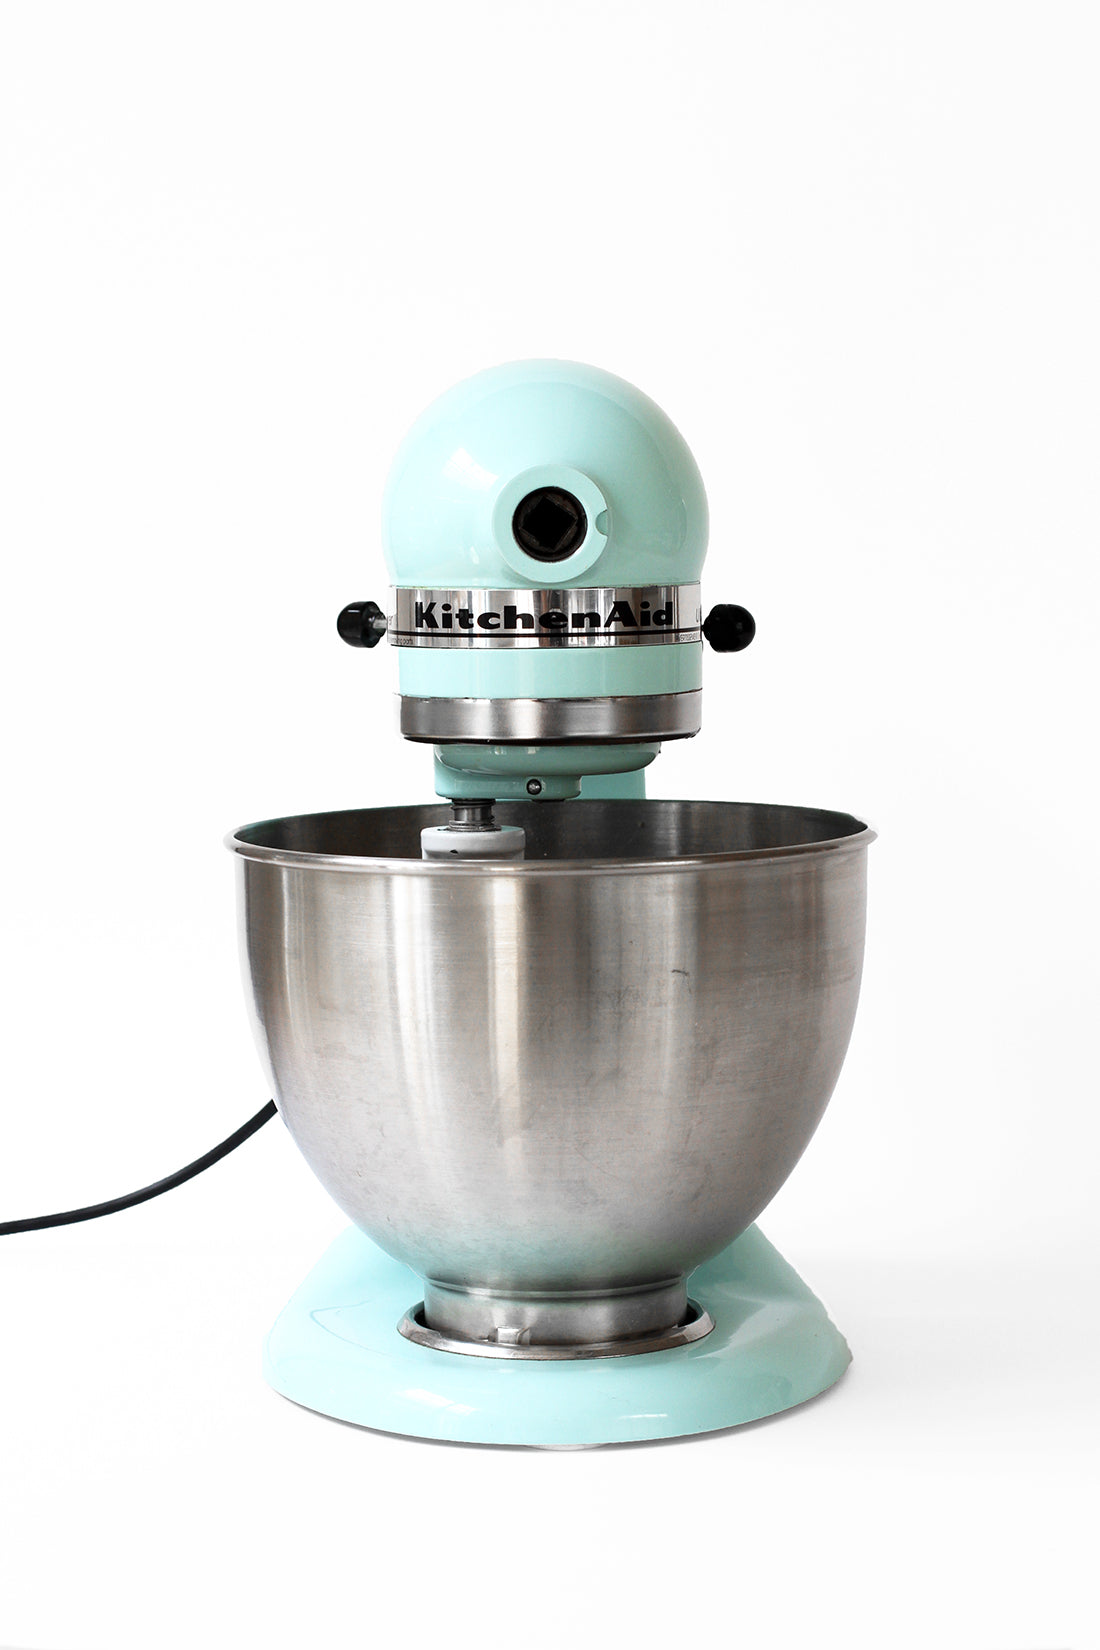 A blue KitchenAid® Artisan Stand Mixer used for mixing Miss Jones Baking Co Chocolate Chip Brownie Skillet